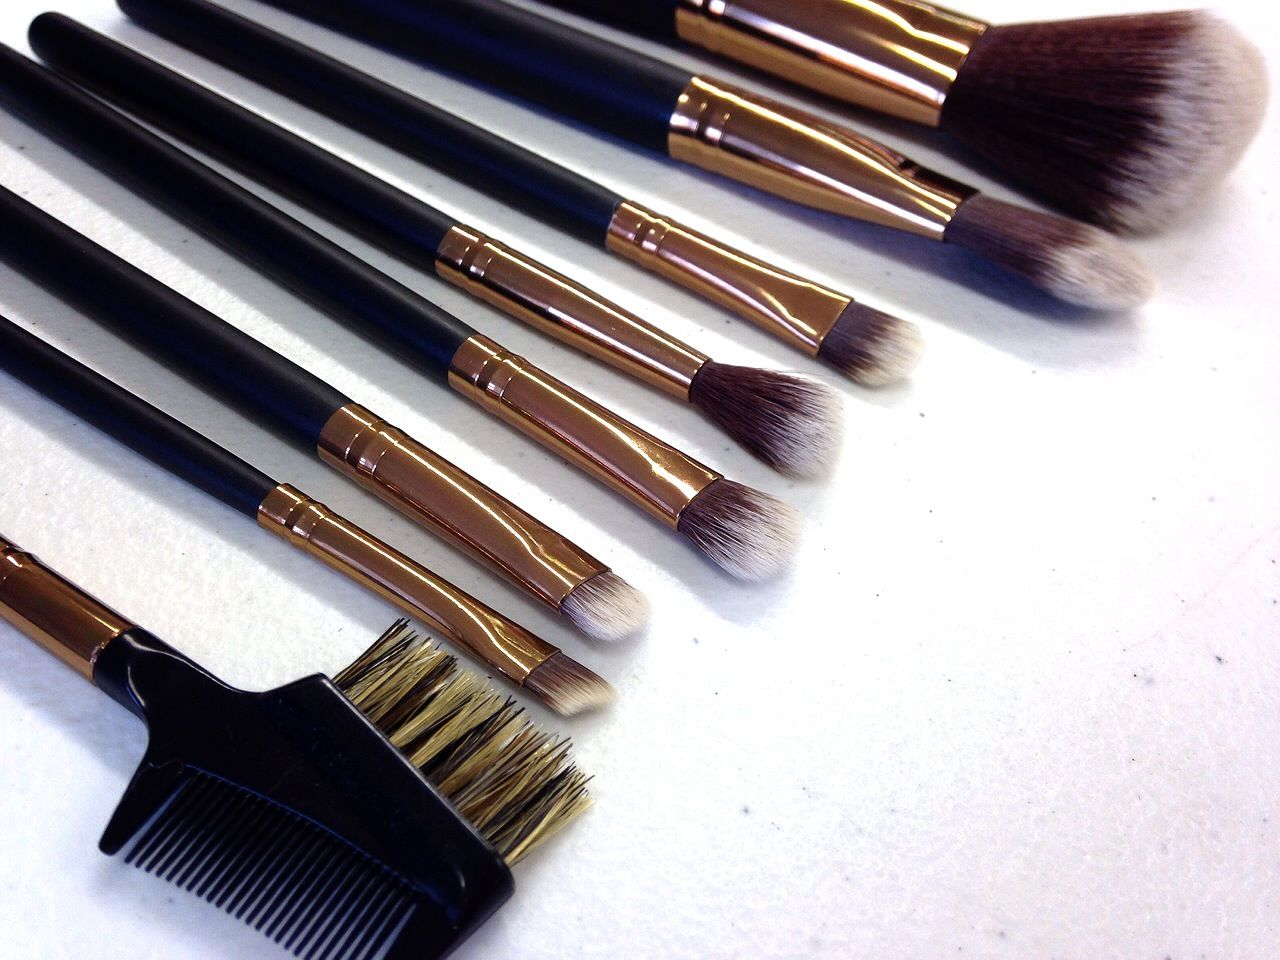 NEW Infinity brush set in a gold ferrule... http